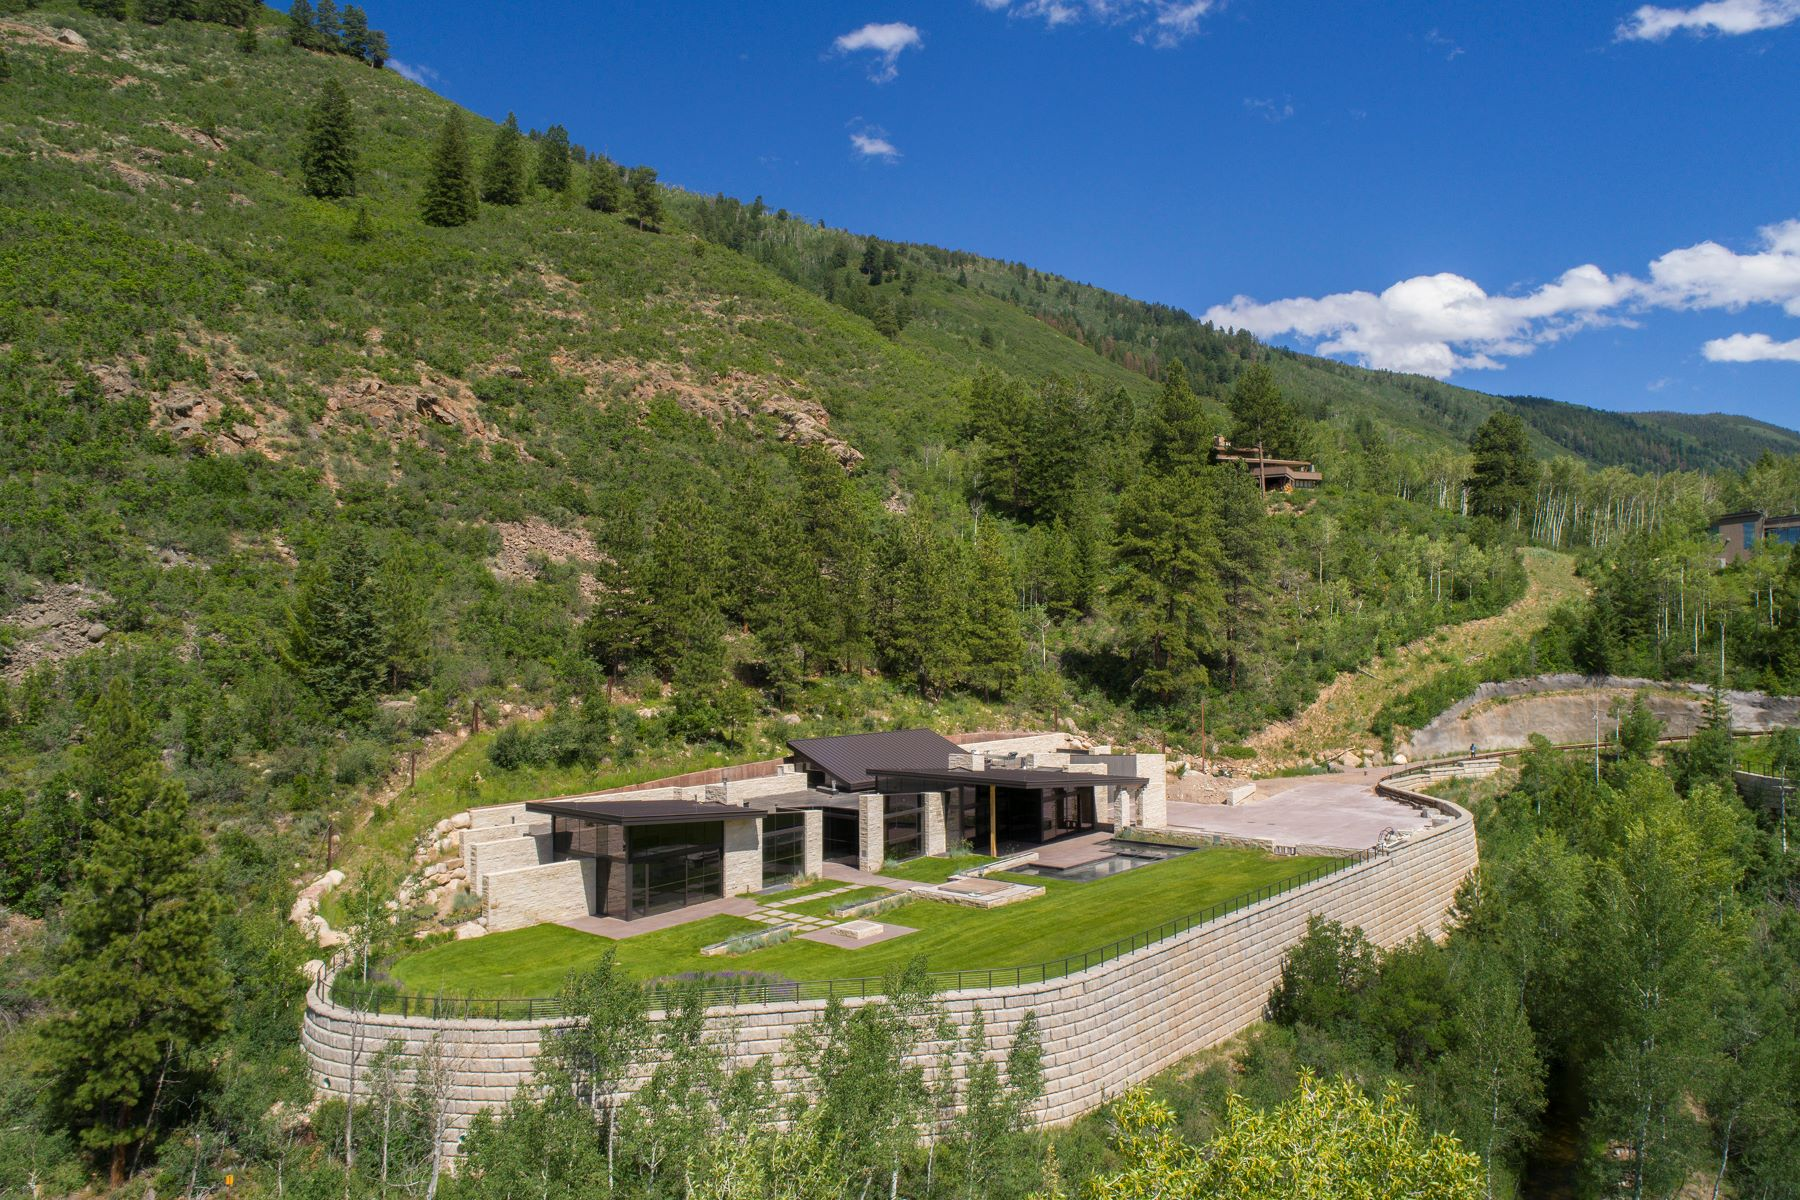 Single Family Homes for Sale at East Aspen Masterpiece 195 Skimming Lane, Aspen, Colorado 81611 United States